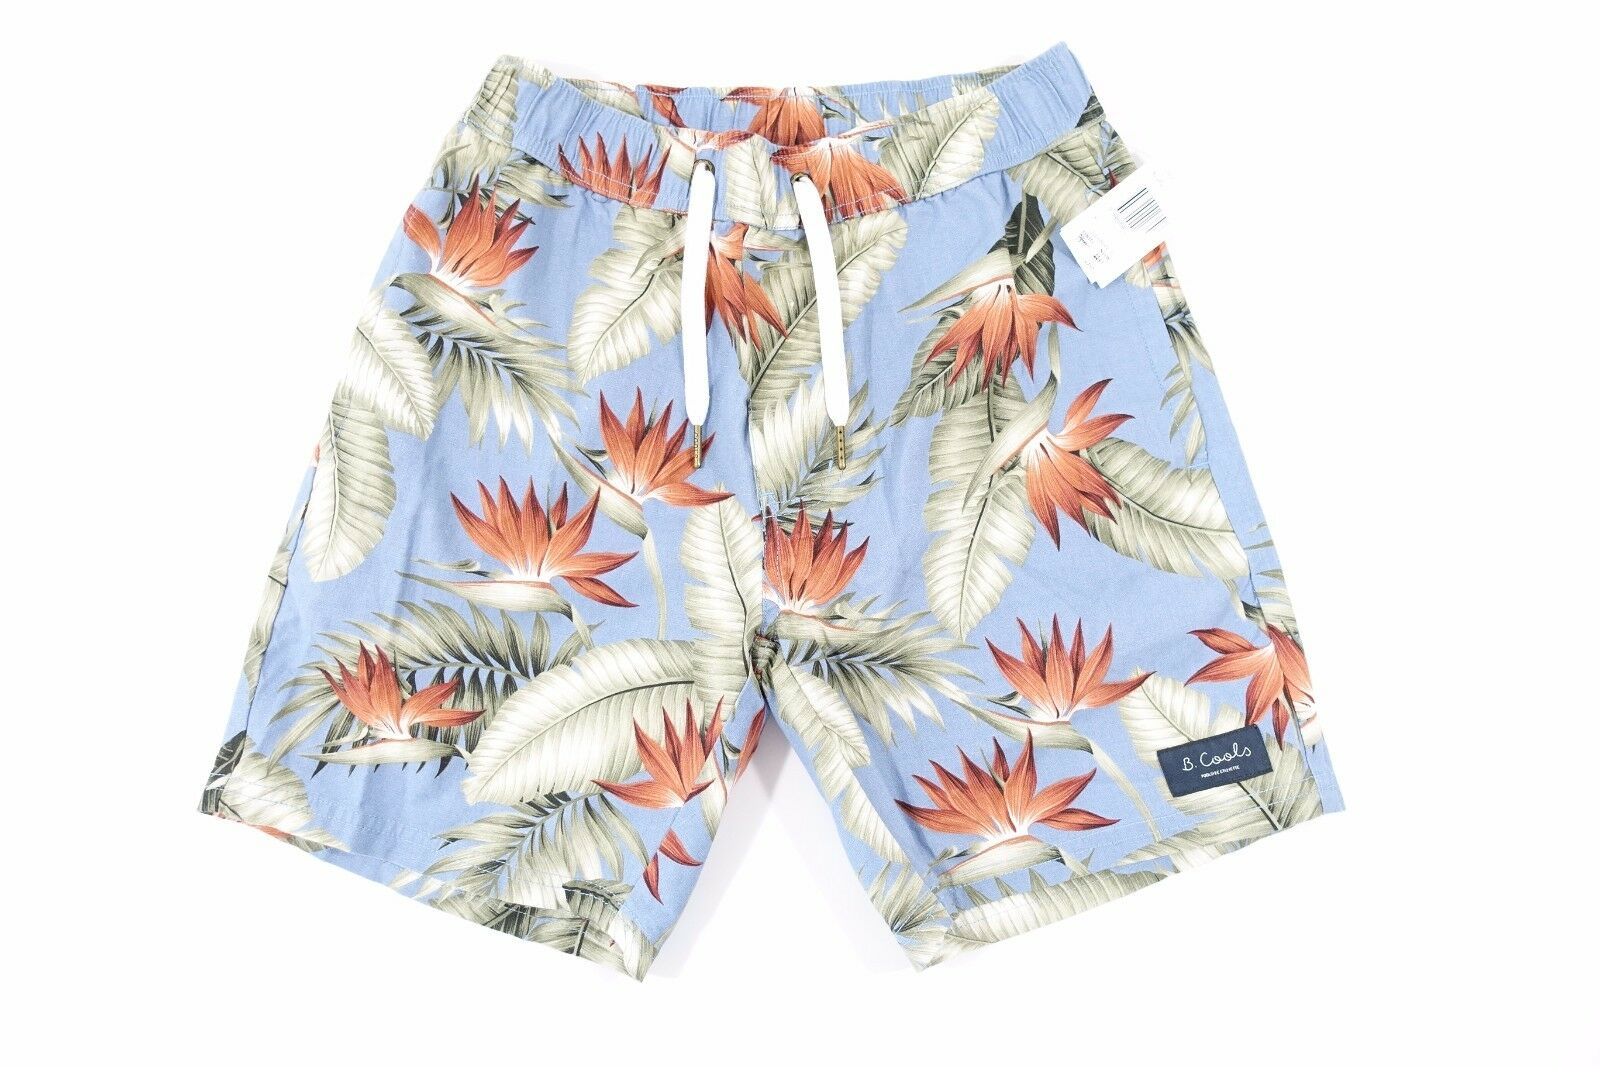 BARNEY COOL HAWAIIAN FLORAL blueE 32 LINEN BLEND DRAW STRING SHORTS MENS NWT NEW